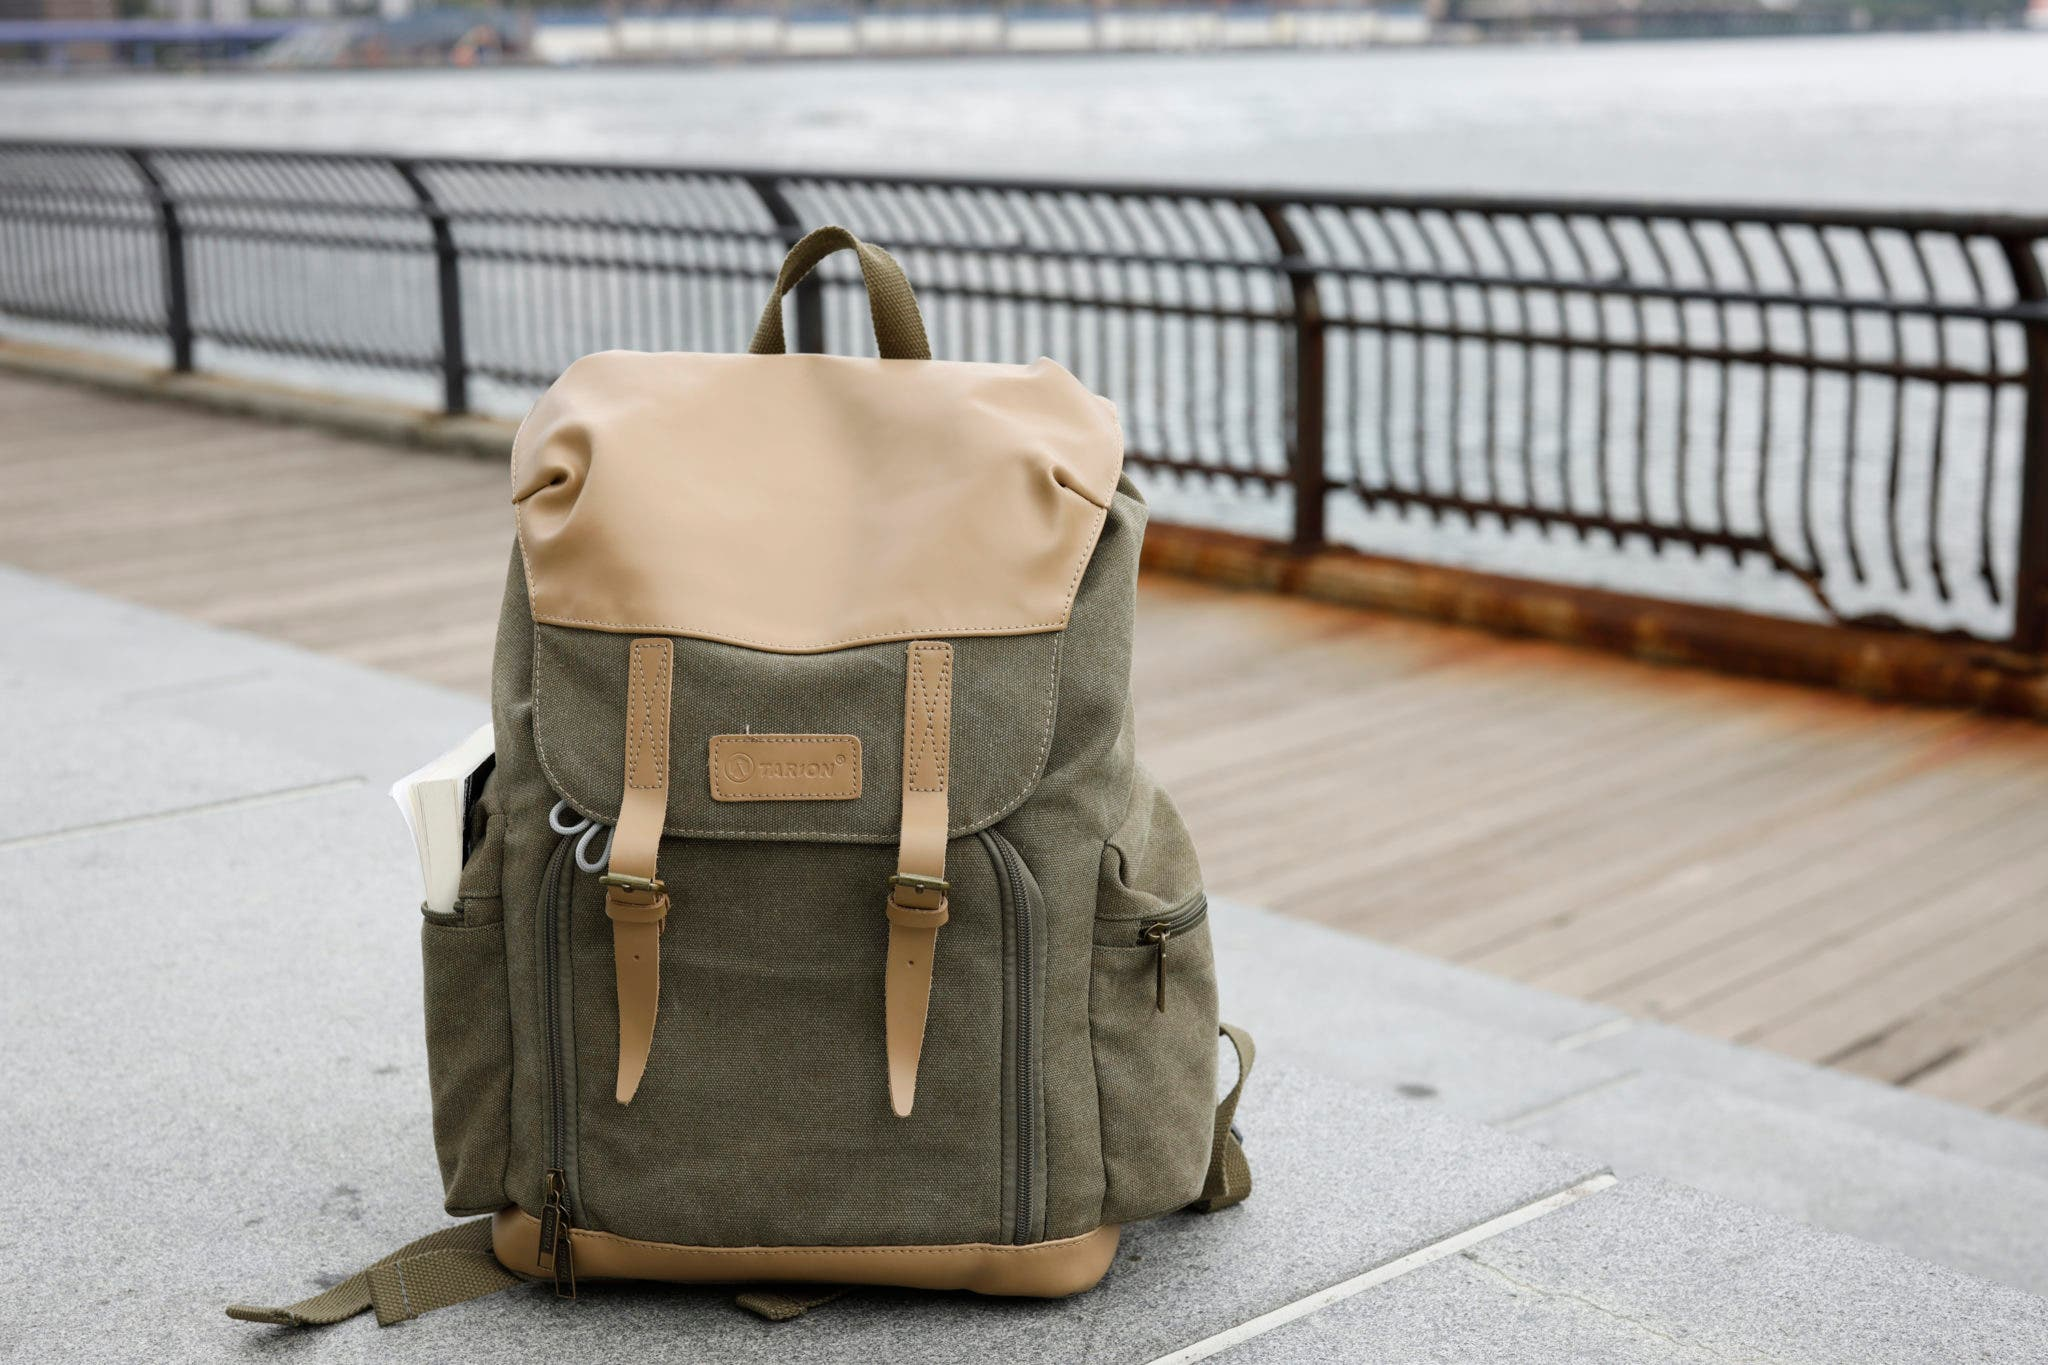 Camera Bag Review: Tarion M-02 (The Affordable Backpack for the Roaming Photographer)